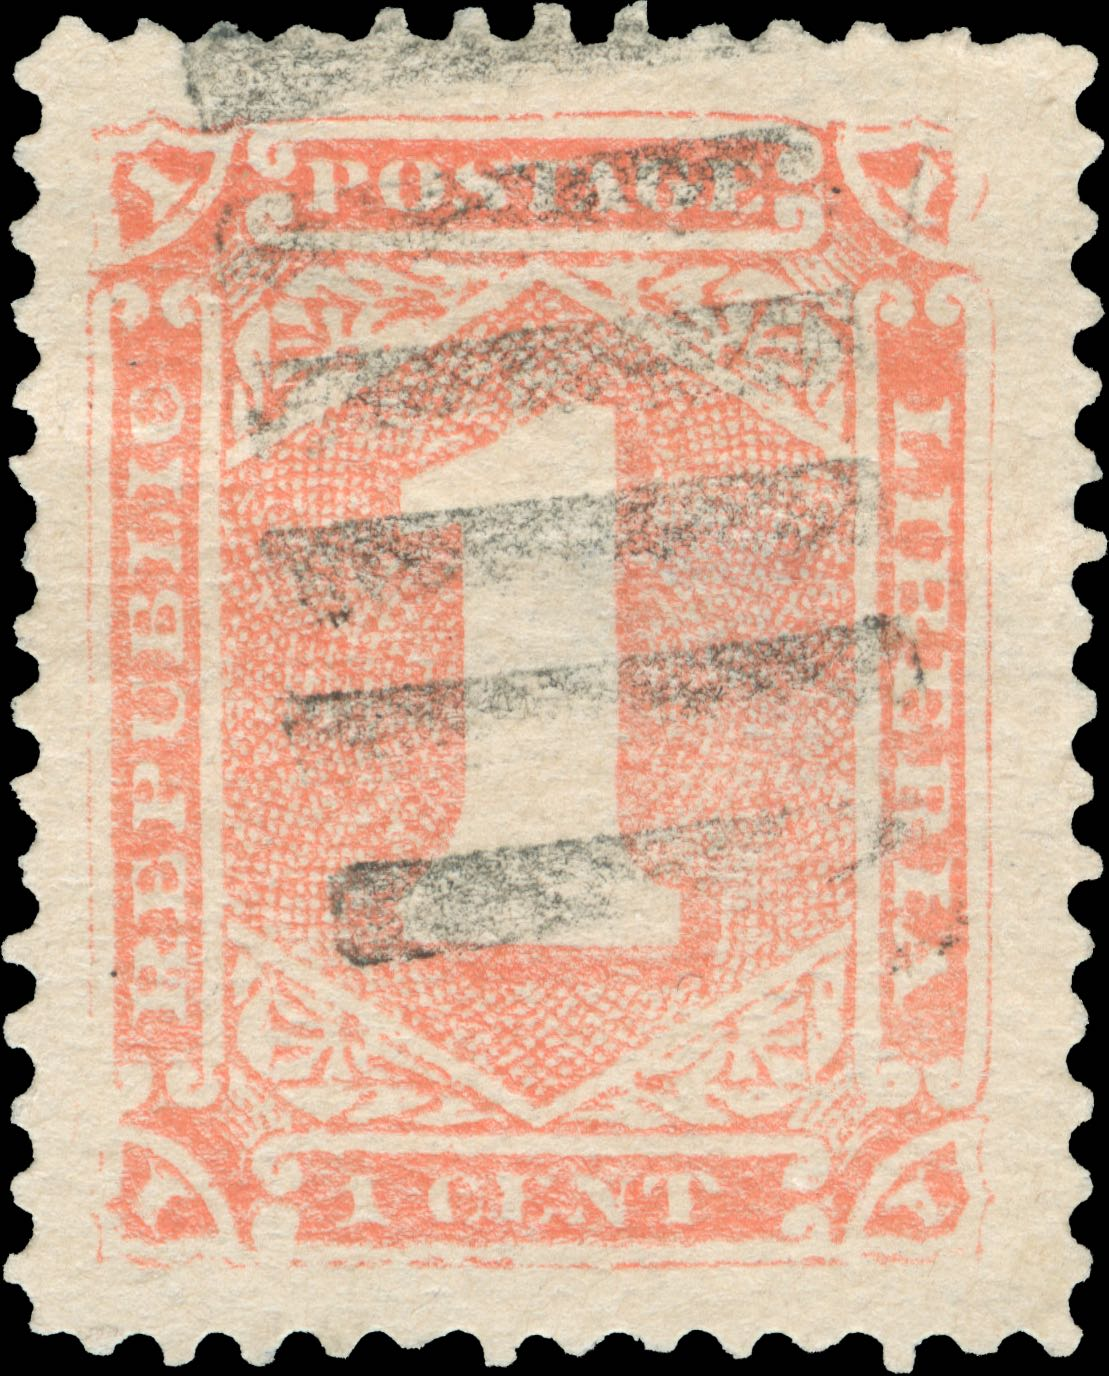 Liberia_1885-92_Numeral_1c_Forgery